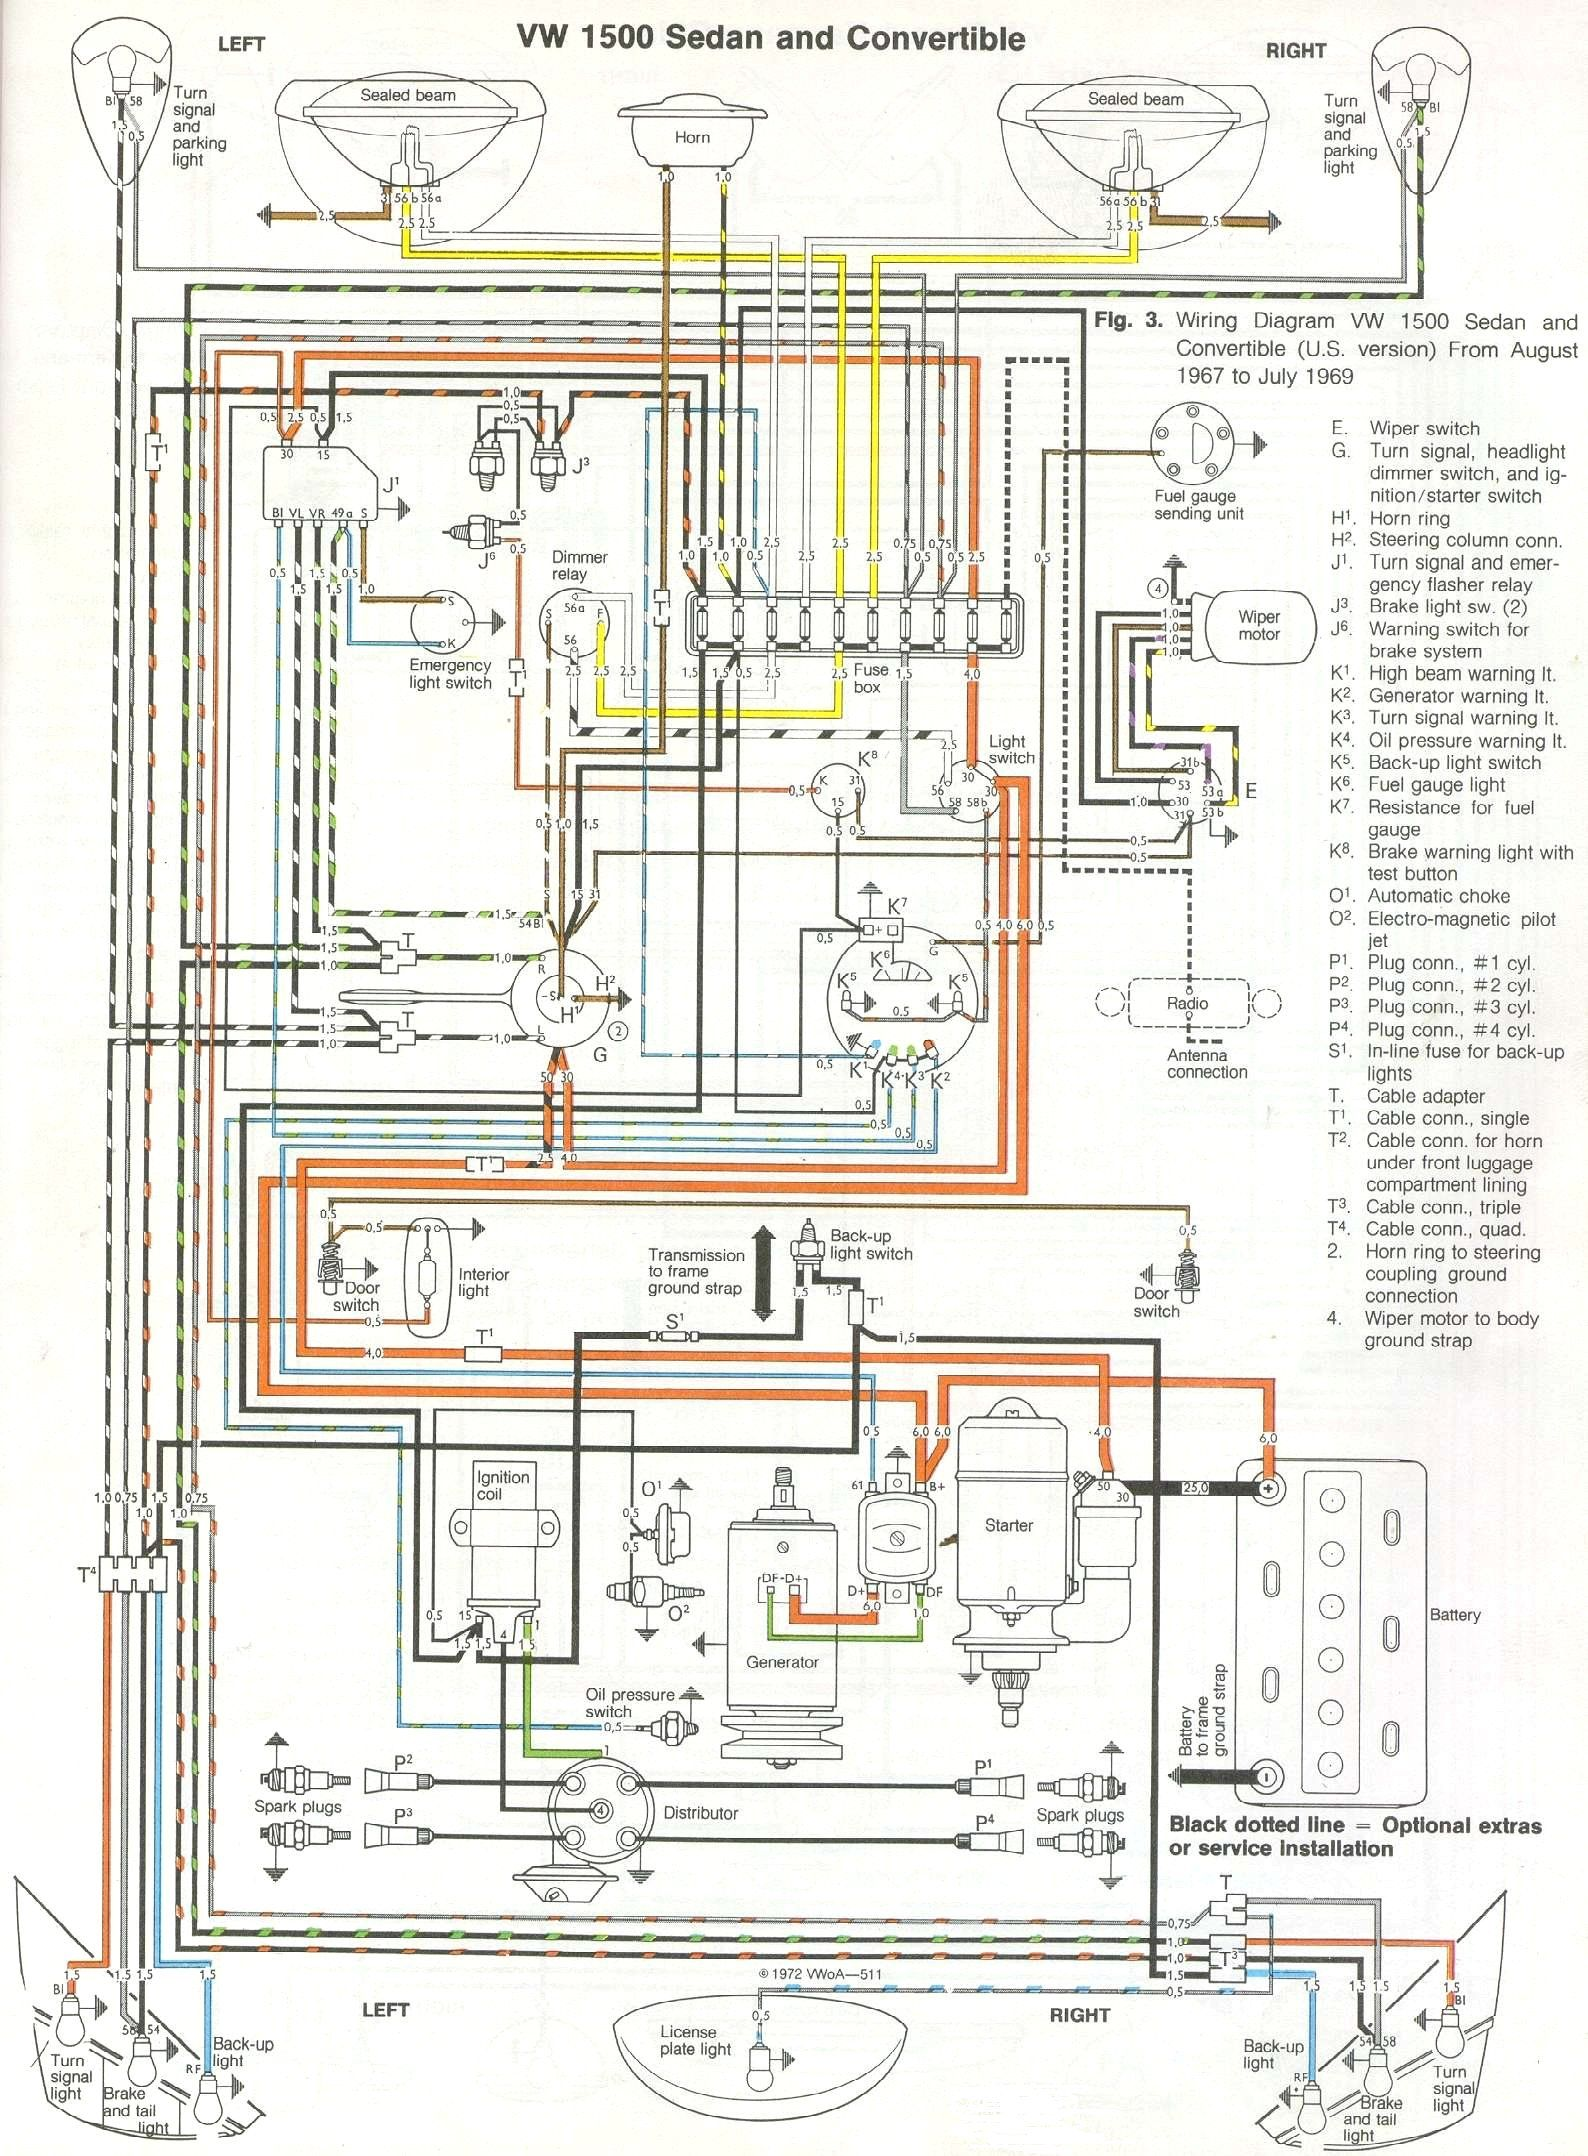 Magnificent 74 Vw Engine Diagram Wiring Library Wiring Cloud Geisbieswglorg